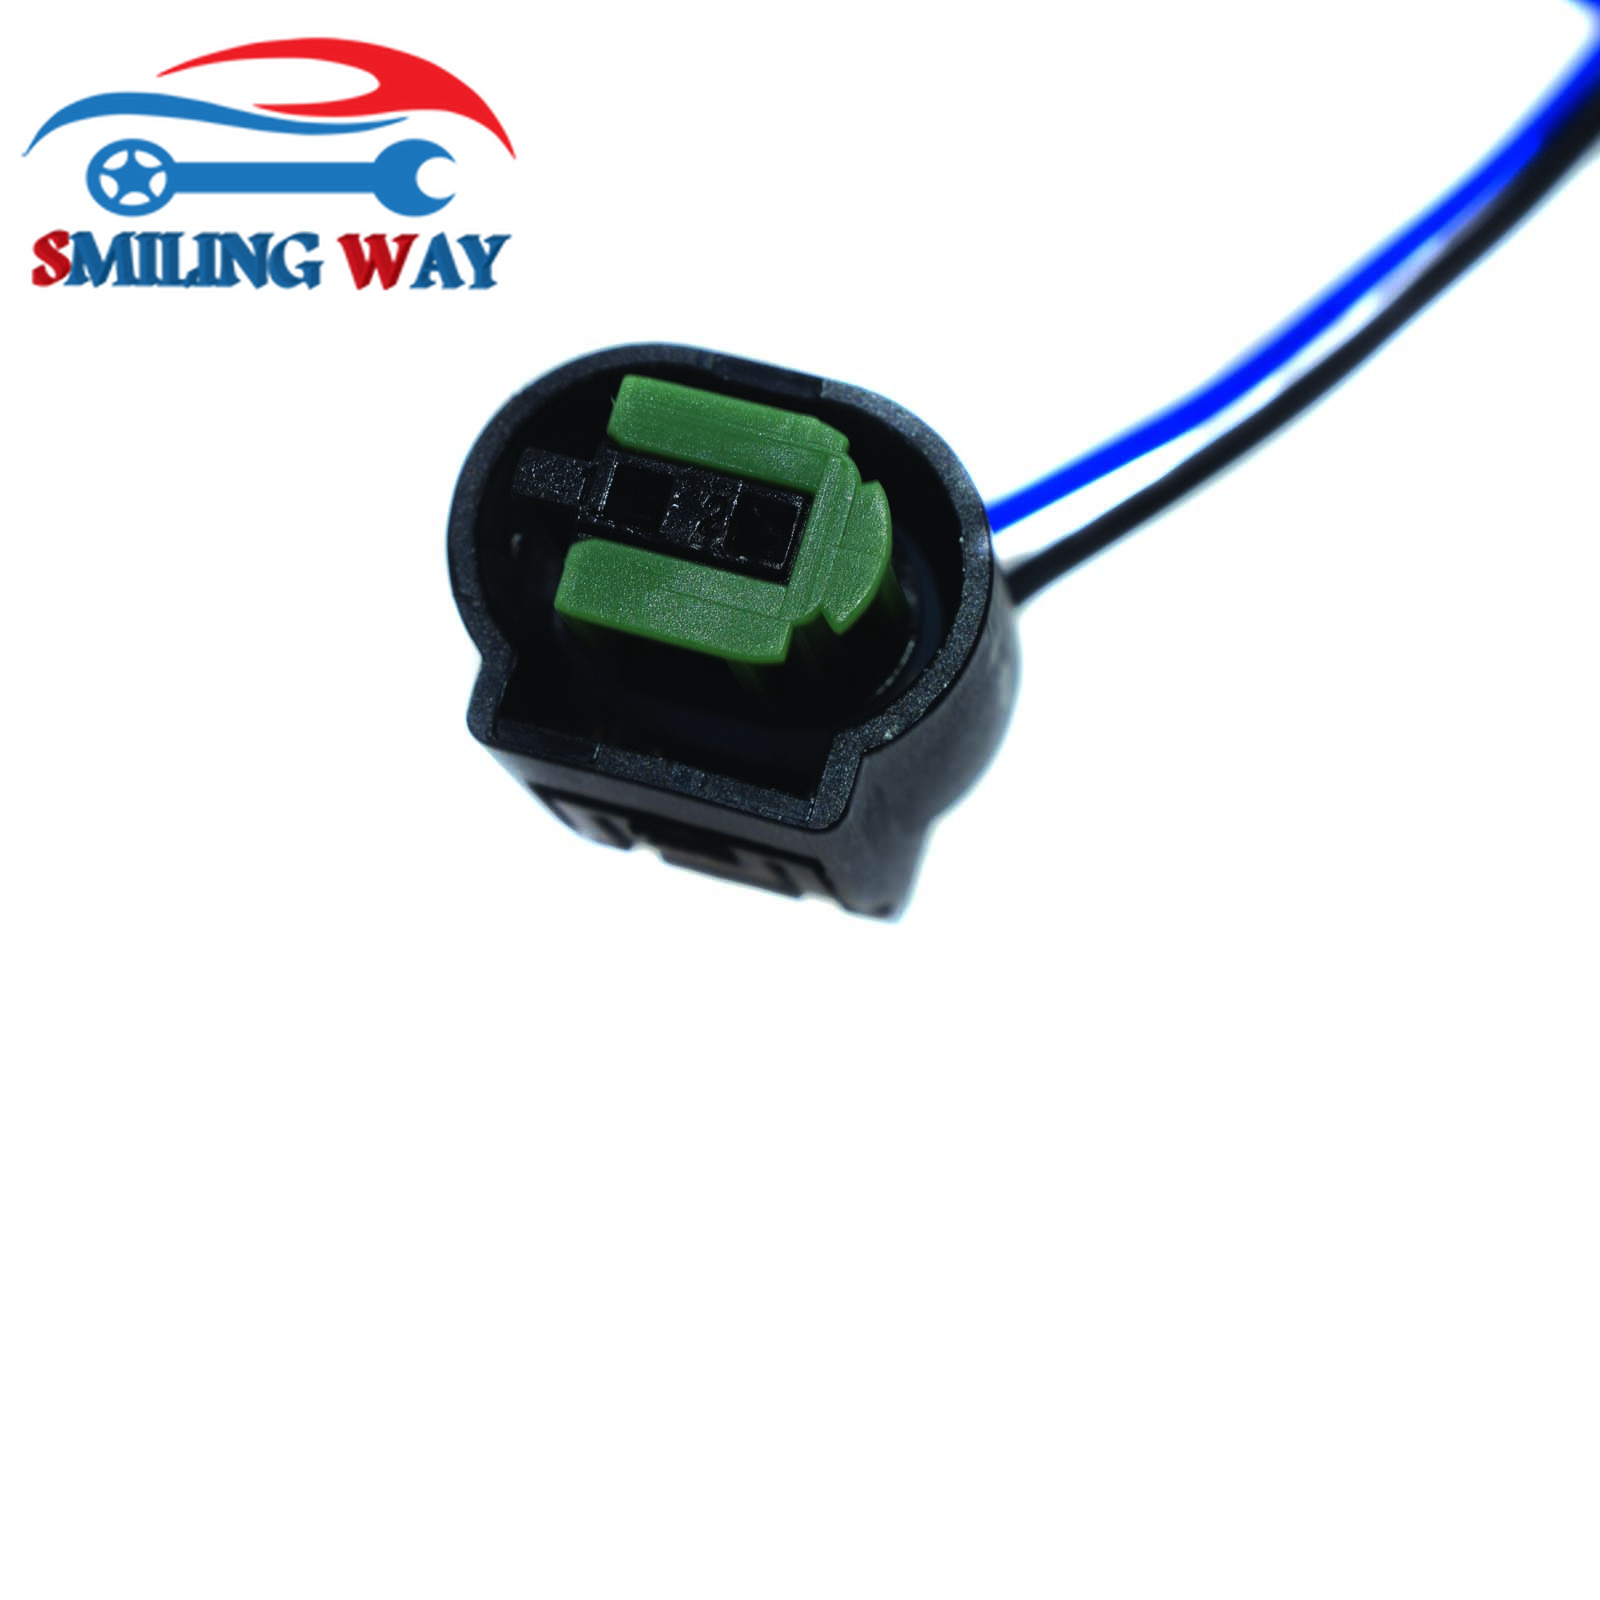 aliexpress com buy smiling way temperature airbag sensor connector plug pigtail harness wire cable for bmw e36 e38 e46 e39 e60 e61 e66 m3 m5 z4 from  [ 1600 x 1600 Pixel ]